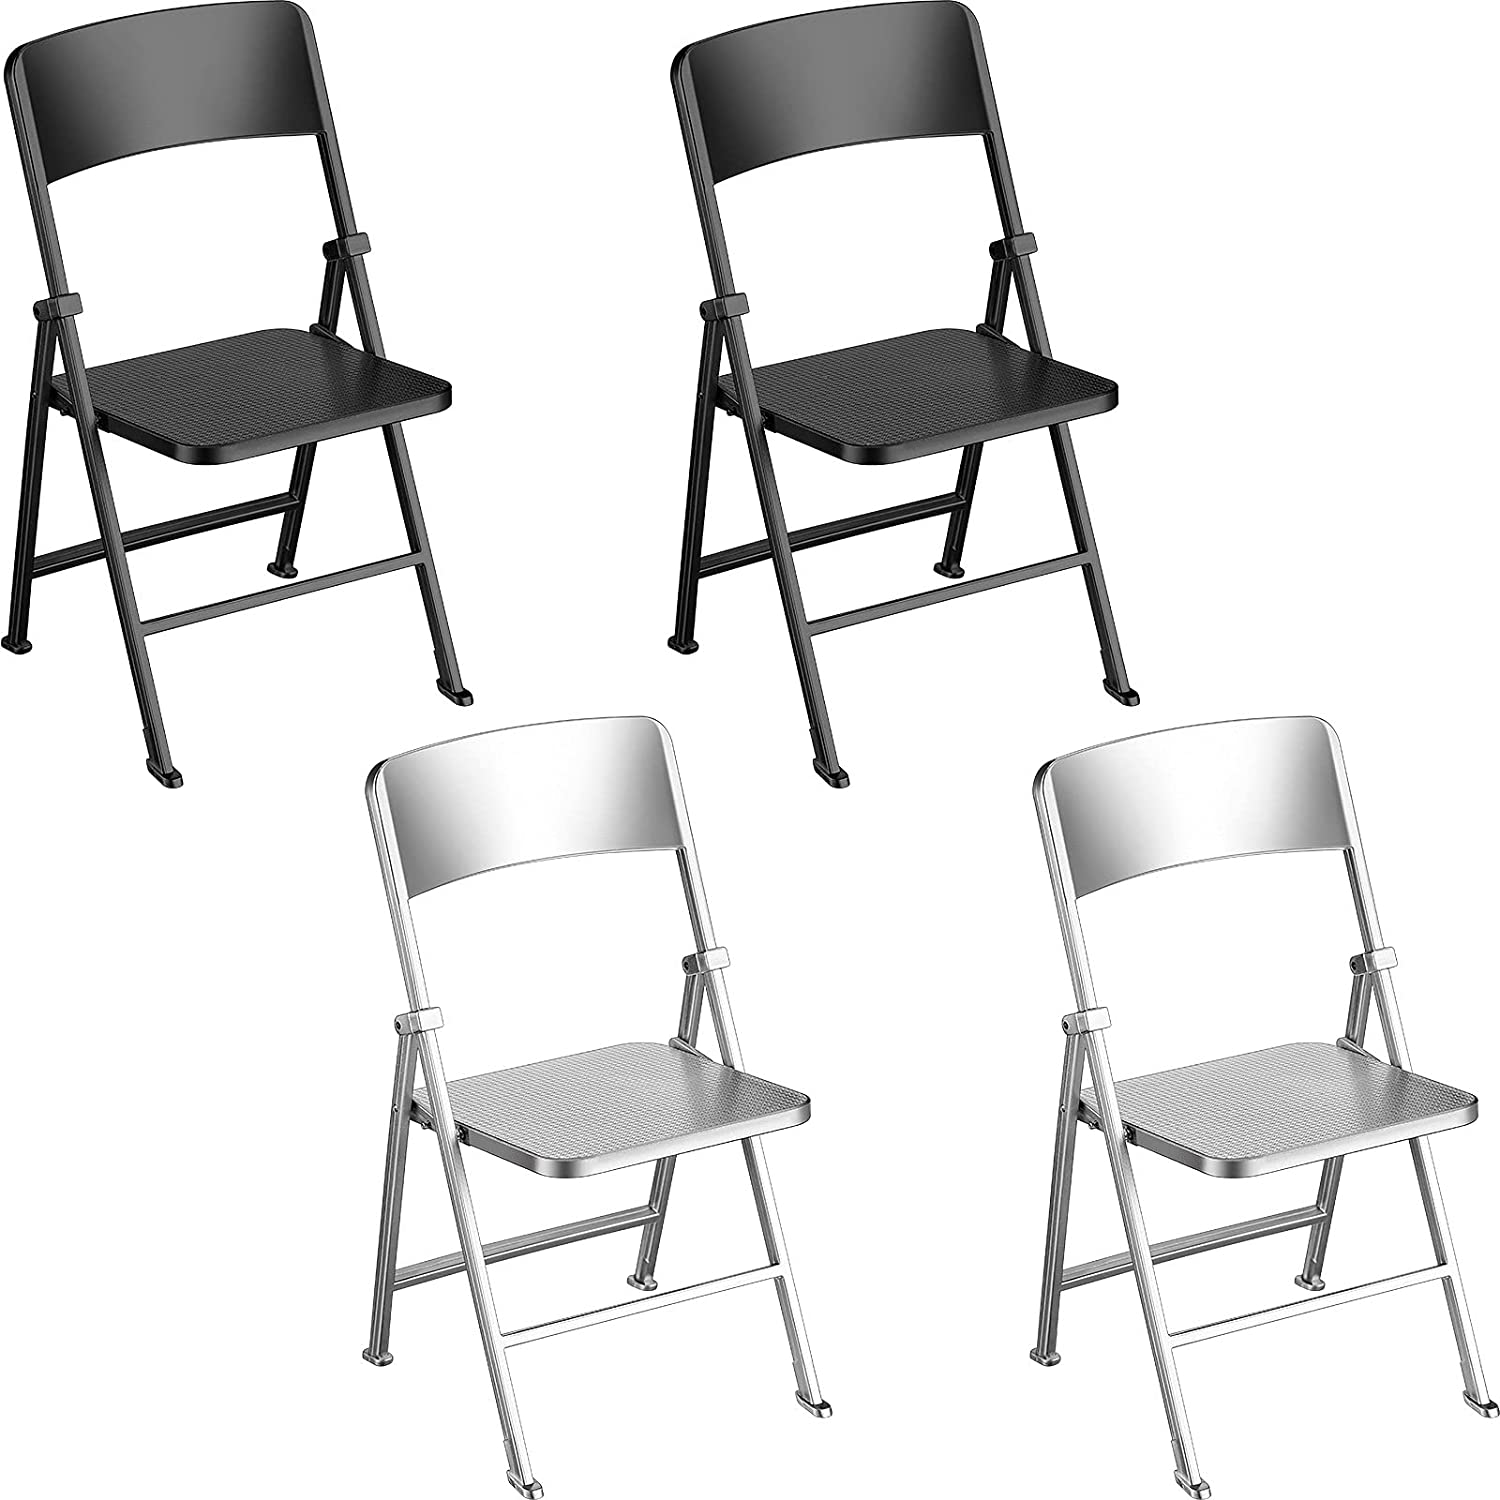 4 Pieces Dolls Folding Chair 1/6 Scale Foldable Chair Model DollHouse Miniature Furniture Accessory Folding Chair for Dolls Action Figure, Boys Girls Toy Doll House DIY, Pretend Play, Black and White